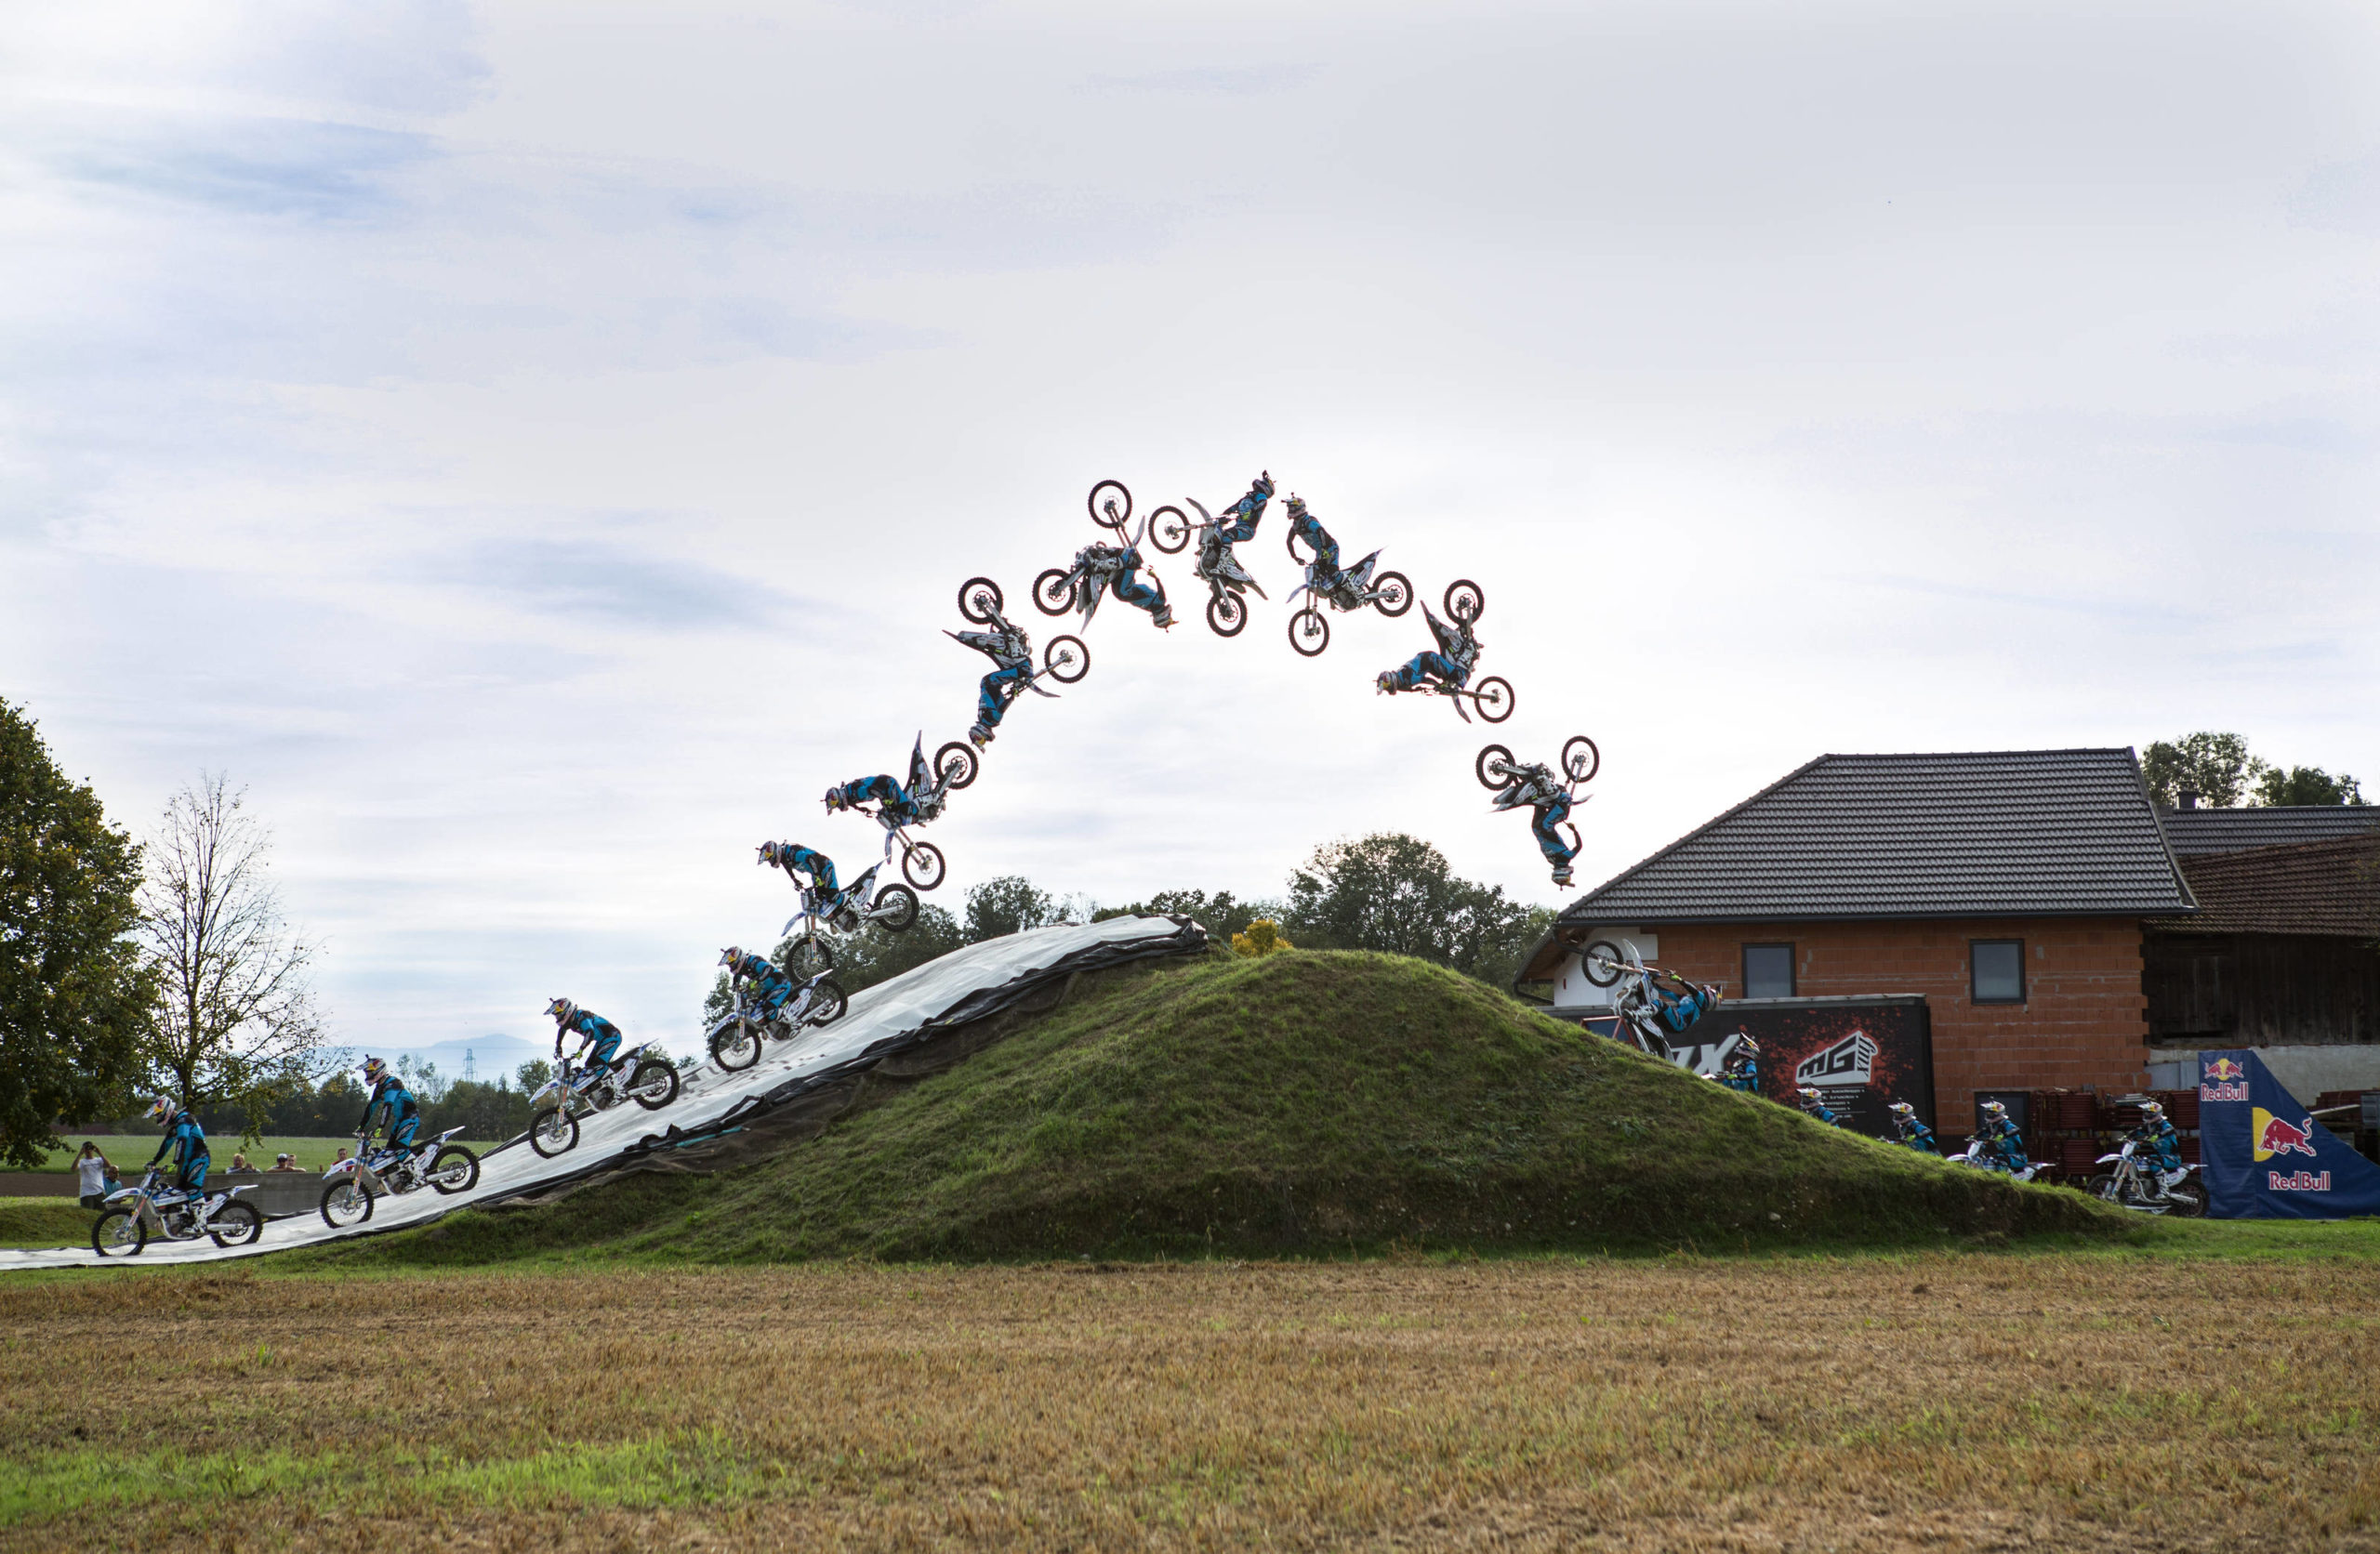 Luc Ackermann of Germany performs a Double Flip as the youngest rider ever at the Jerry Meyer FMX Compound in Piberbach, Austria on October 5th, 2017.  // Oliver Schran/Red Bull Content Pool // AP-1TS47YC1H2111 // Usage for editorial use only //